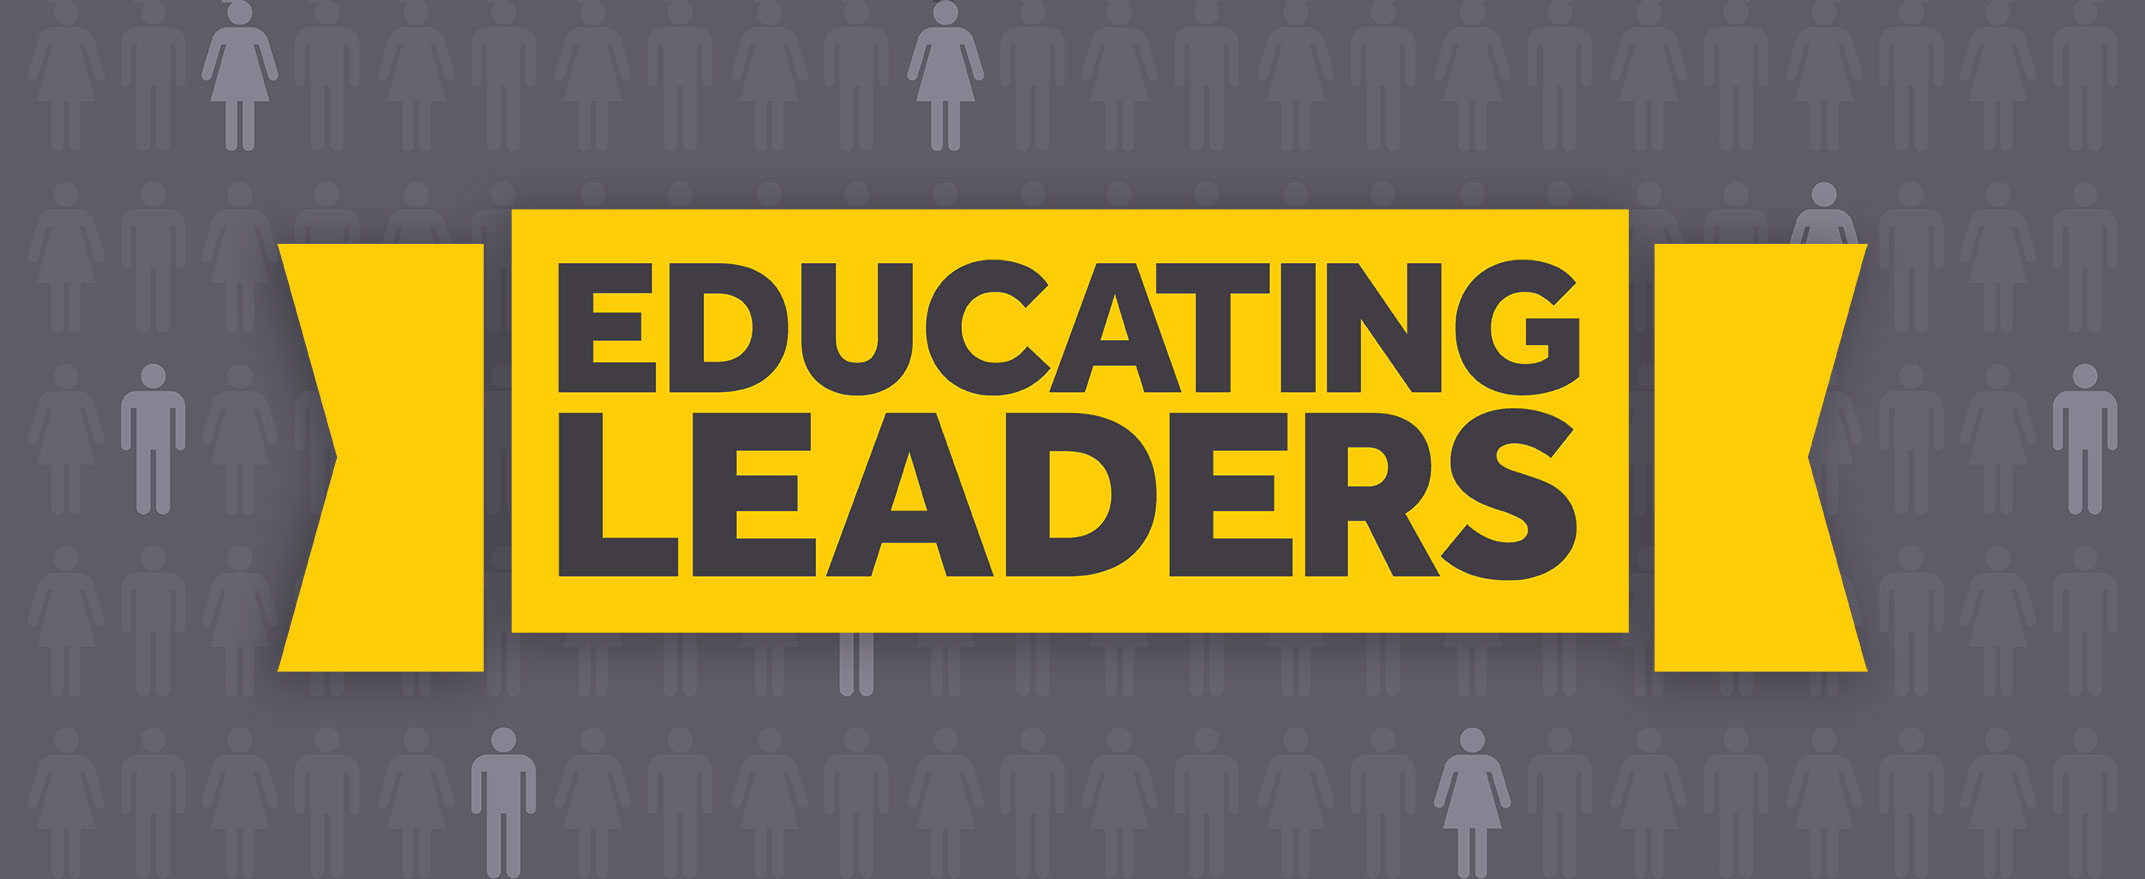 Educating Leaders